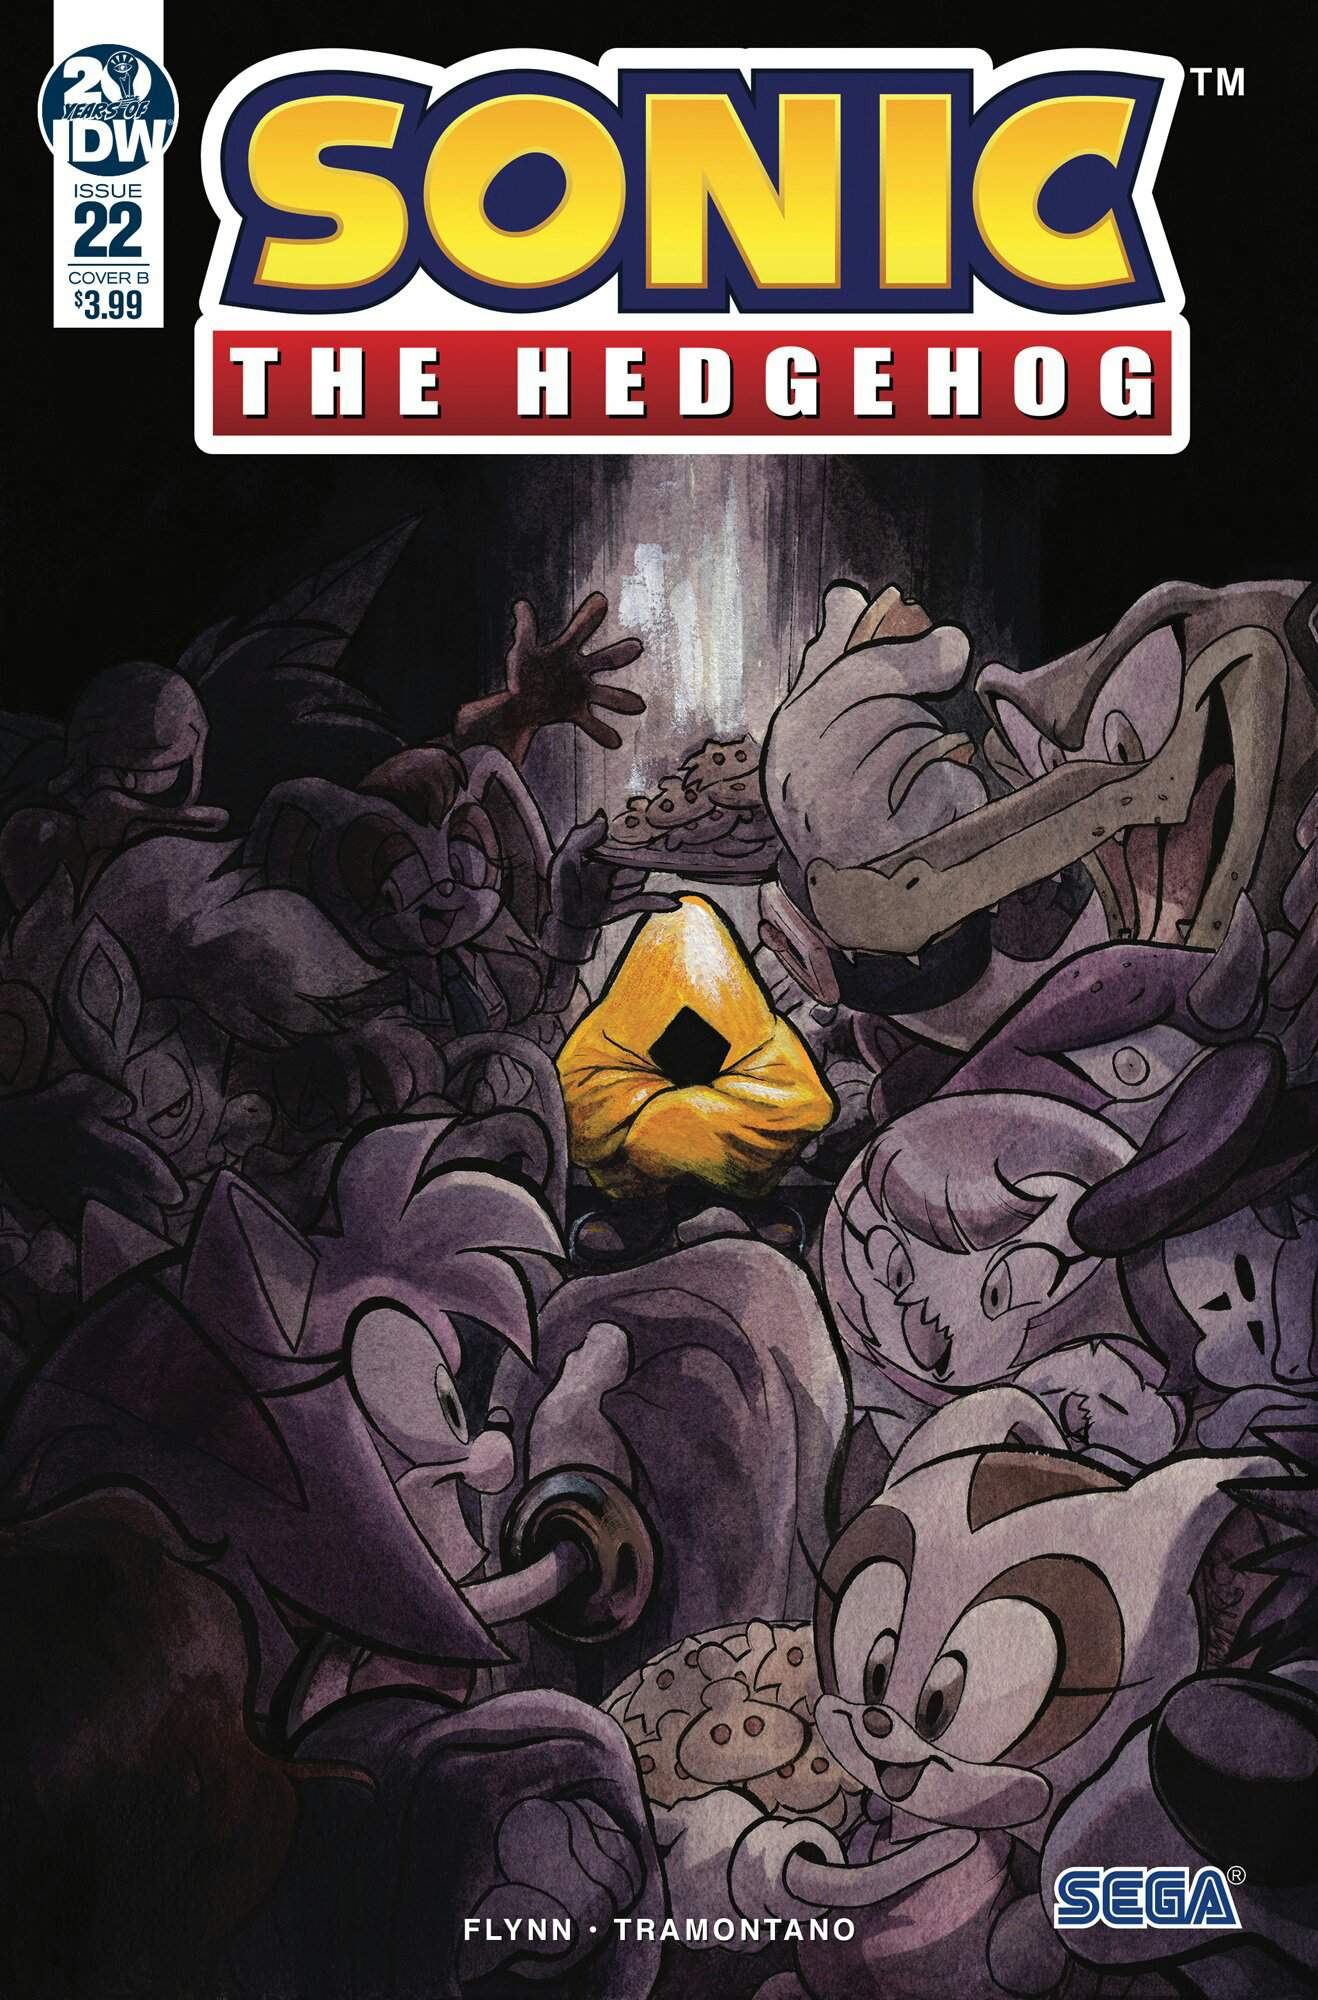 Idw Sonic The Hedgehog Issue 22 Review Sonic The Hedgehog Amino